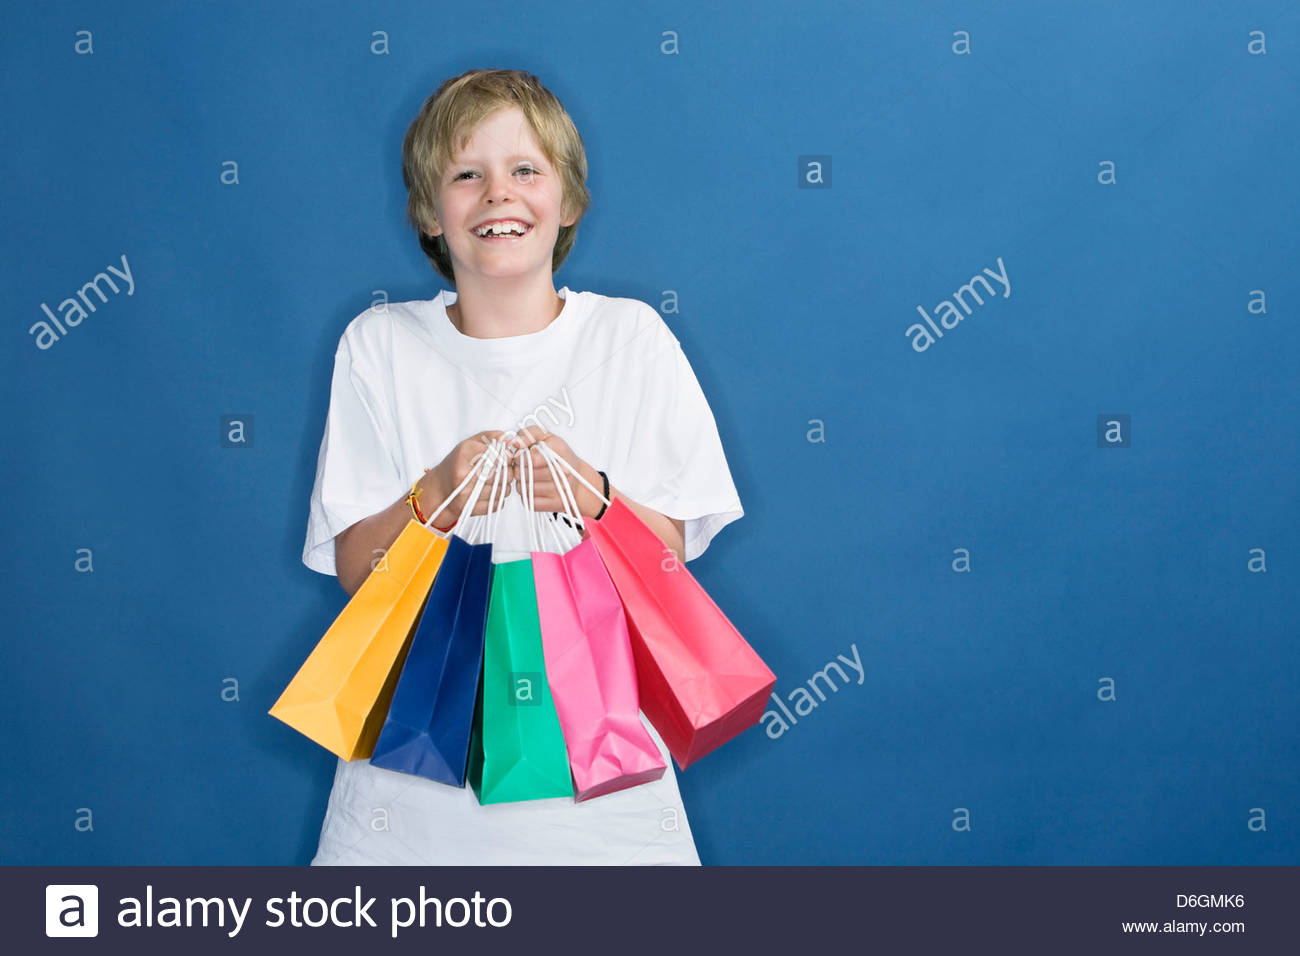 Boy (9) holding paper shopping bags - Stock Image